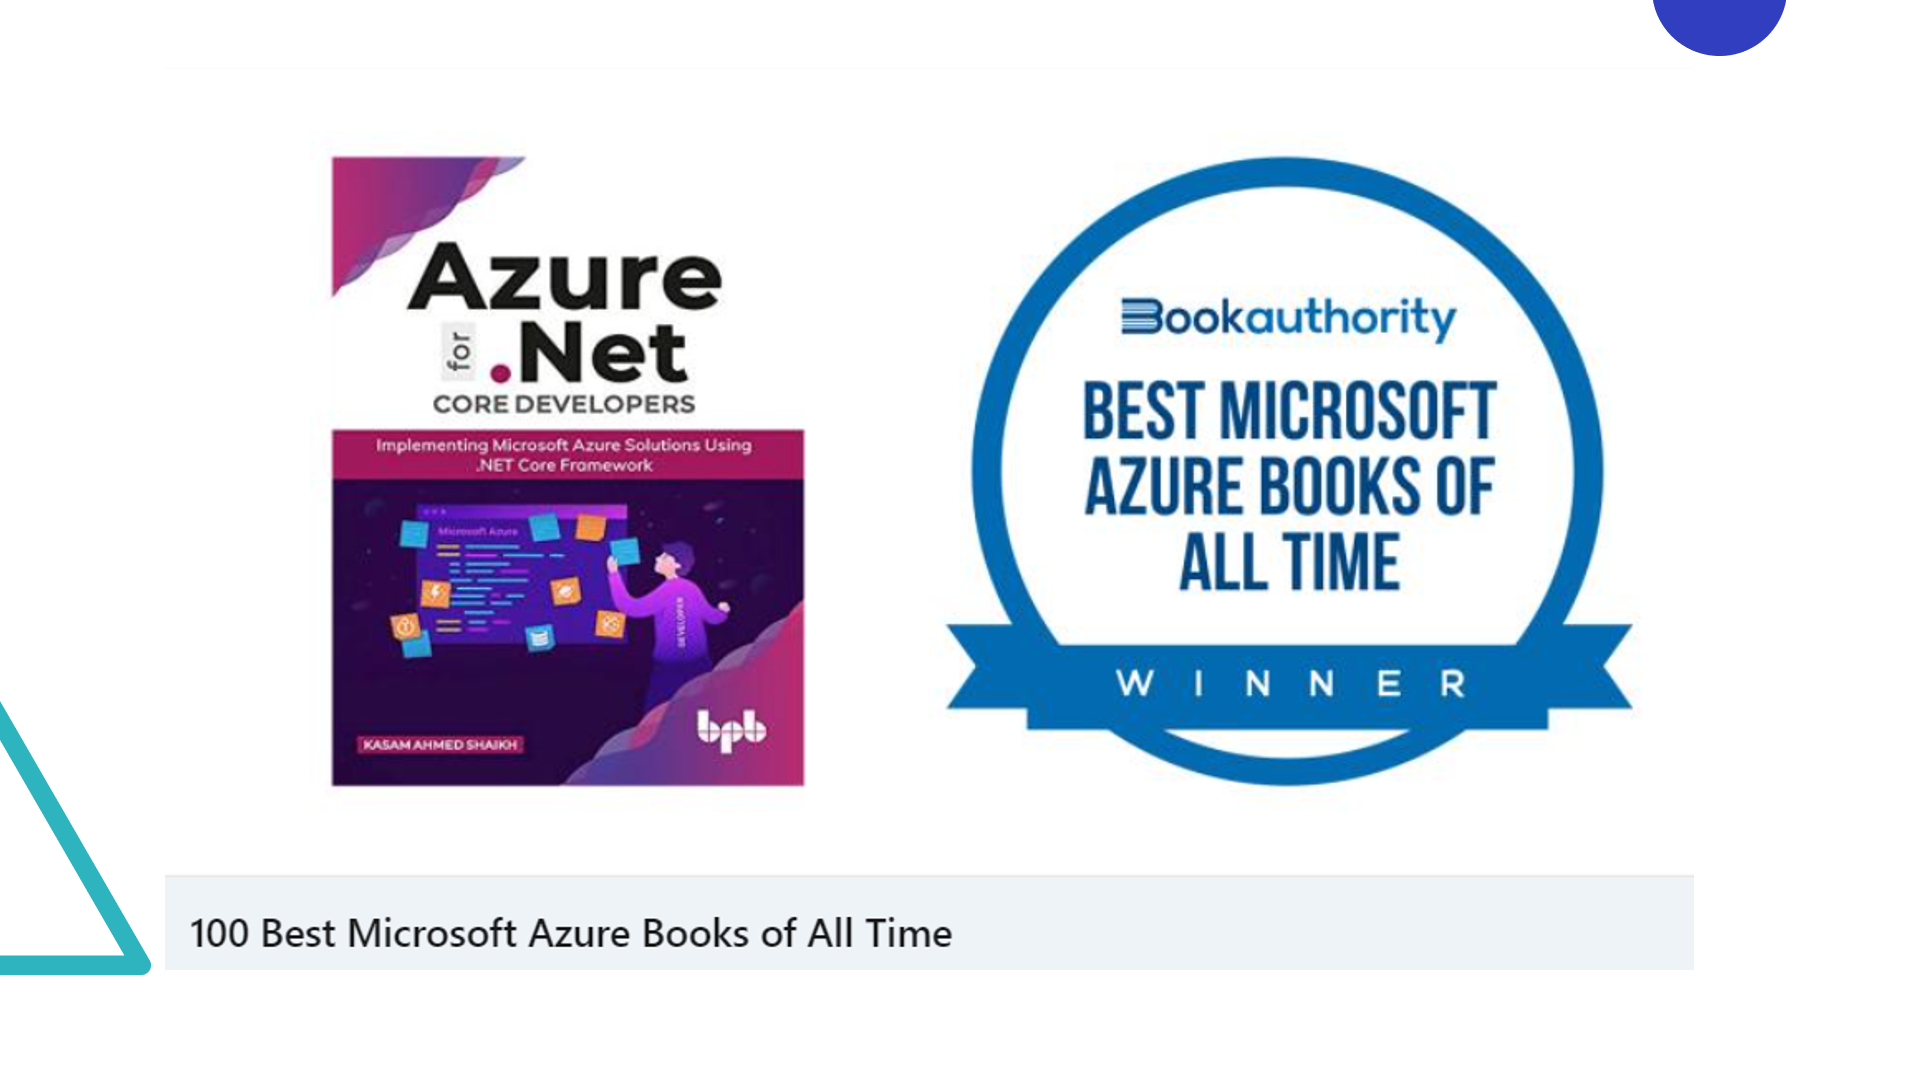 My Book 📚 – Azure for .NET Core Developers made it to the Best Microsoft Azure Books of All Time 👨🎓